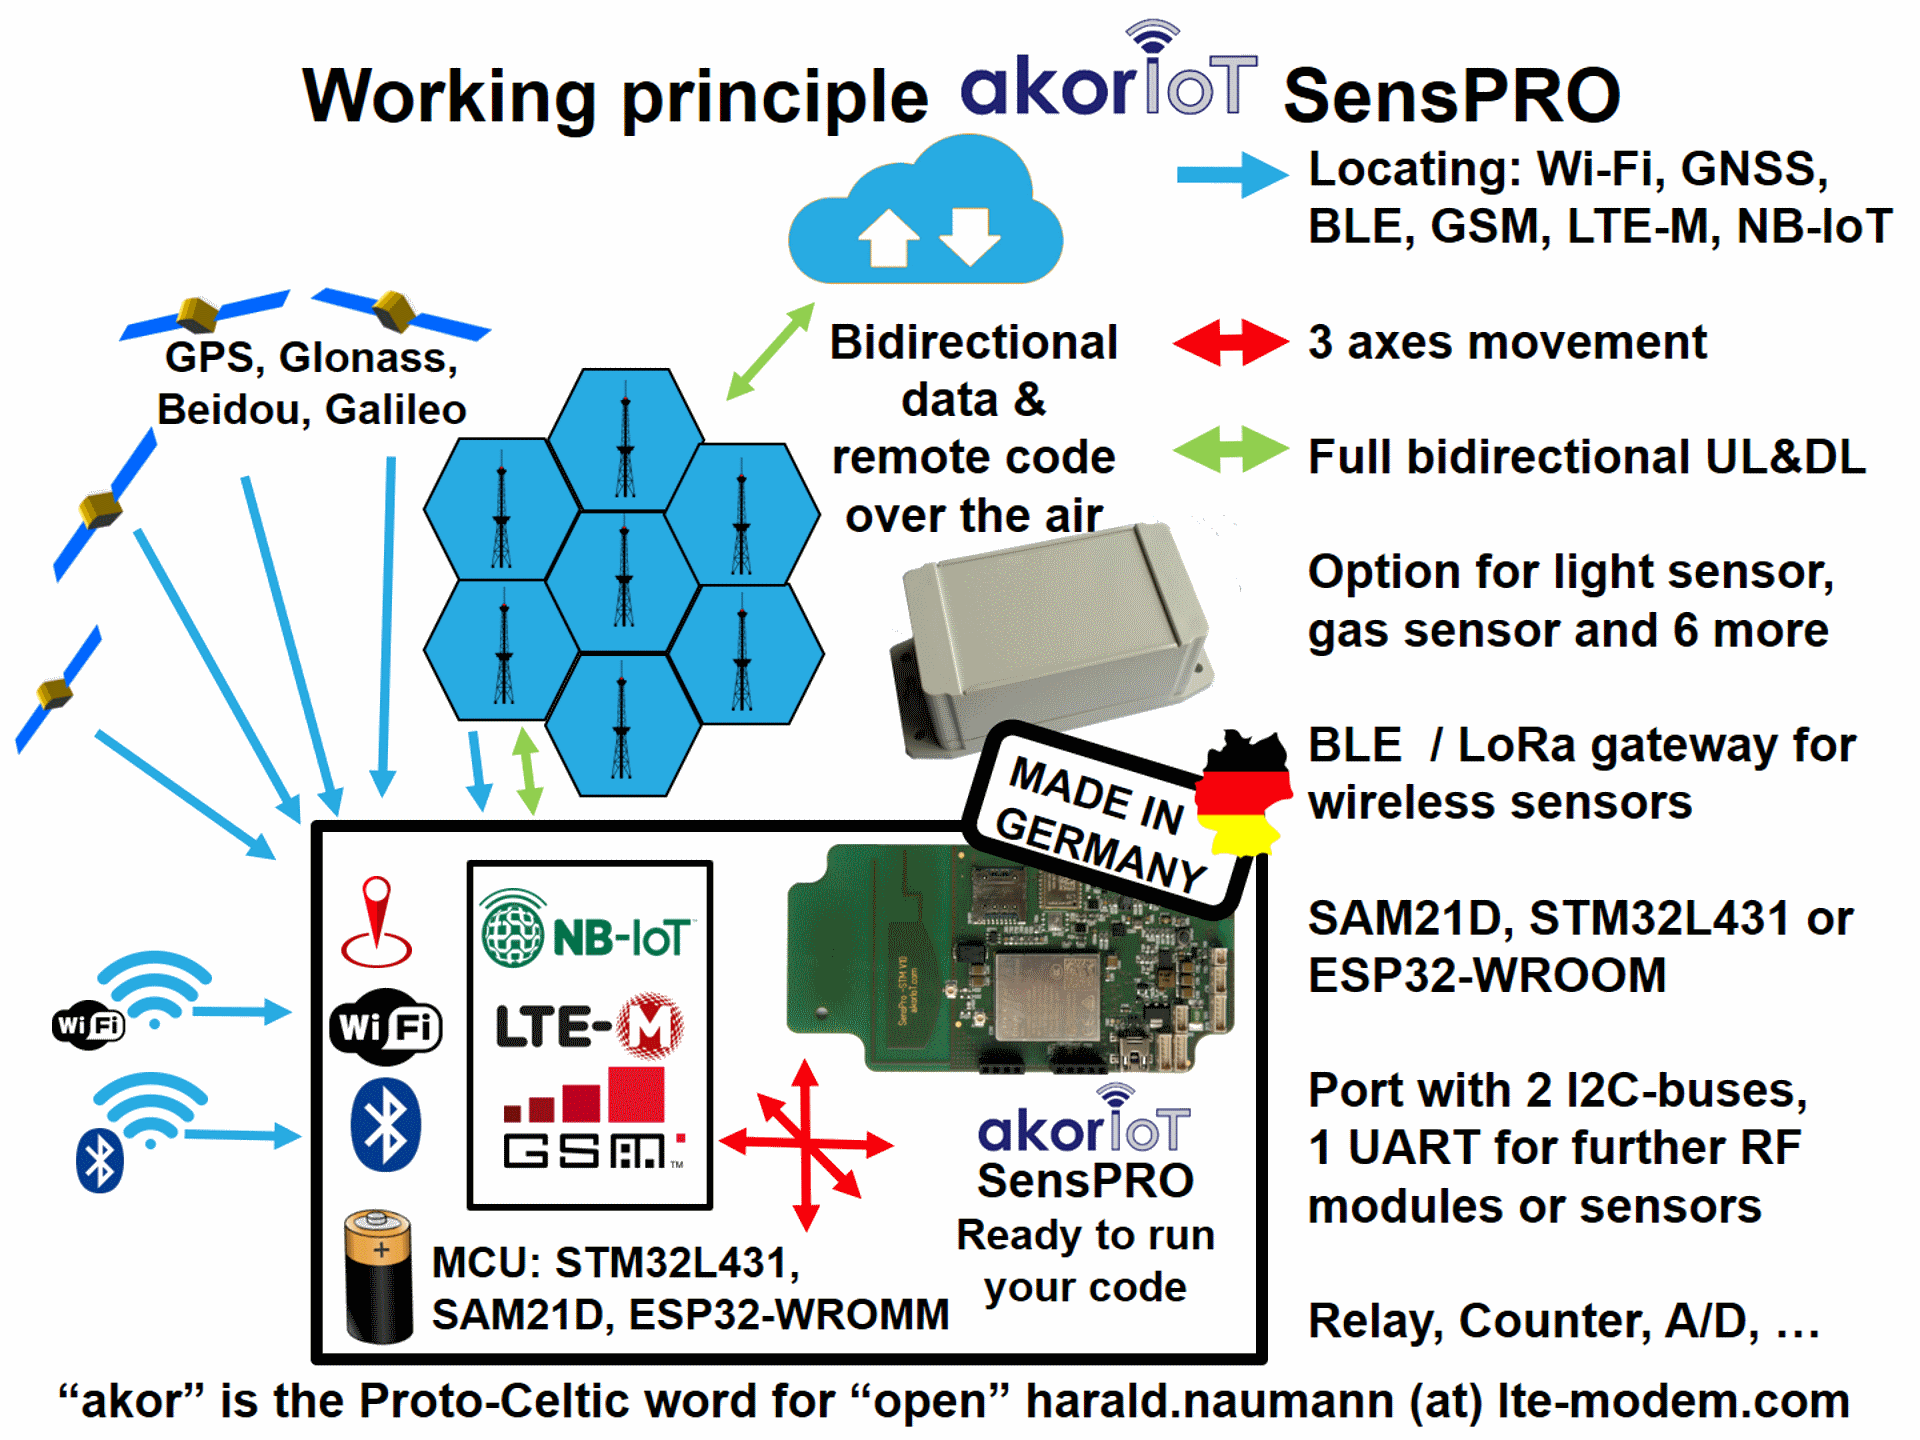 akorIoT SensPRO - reference design for NB-IoT and LTE-M